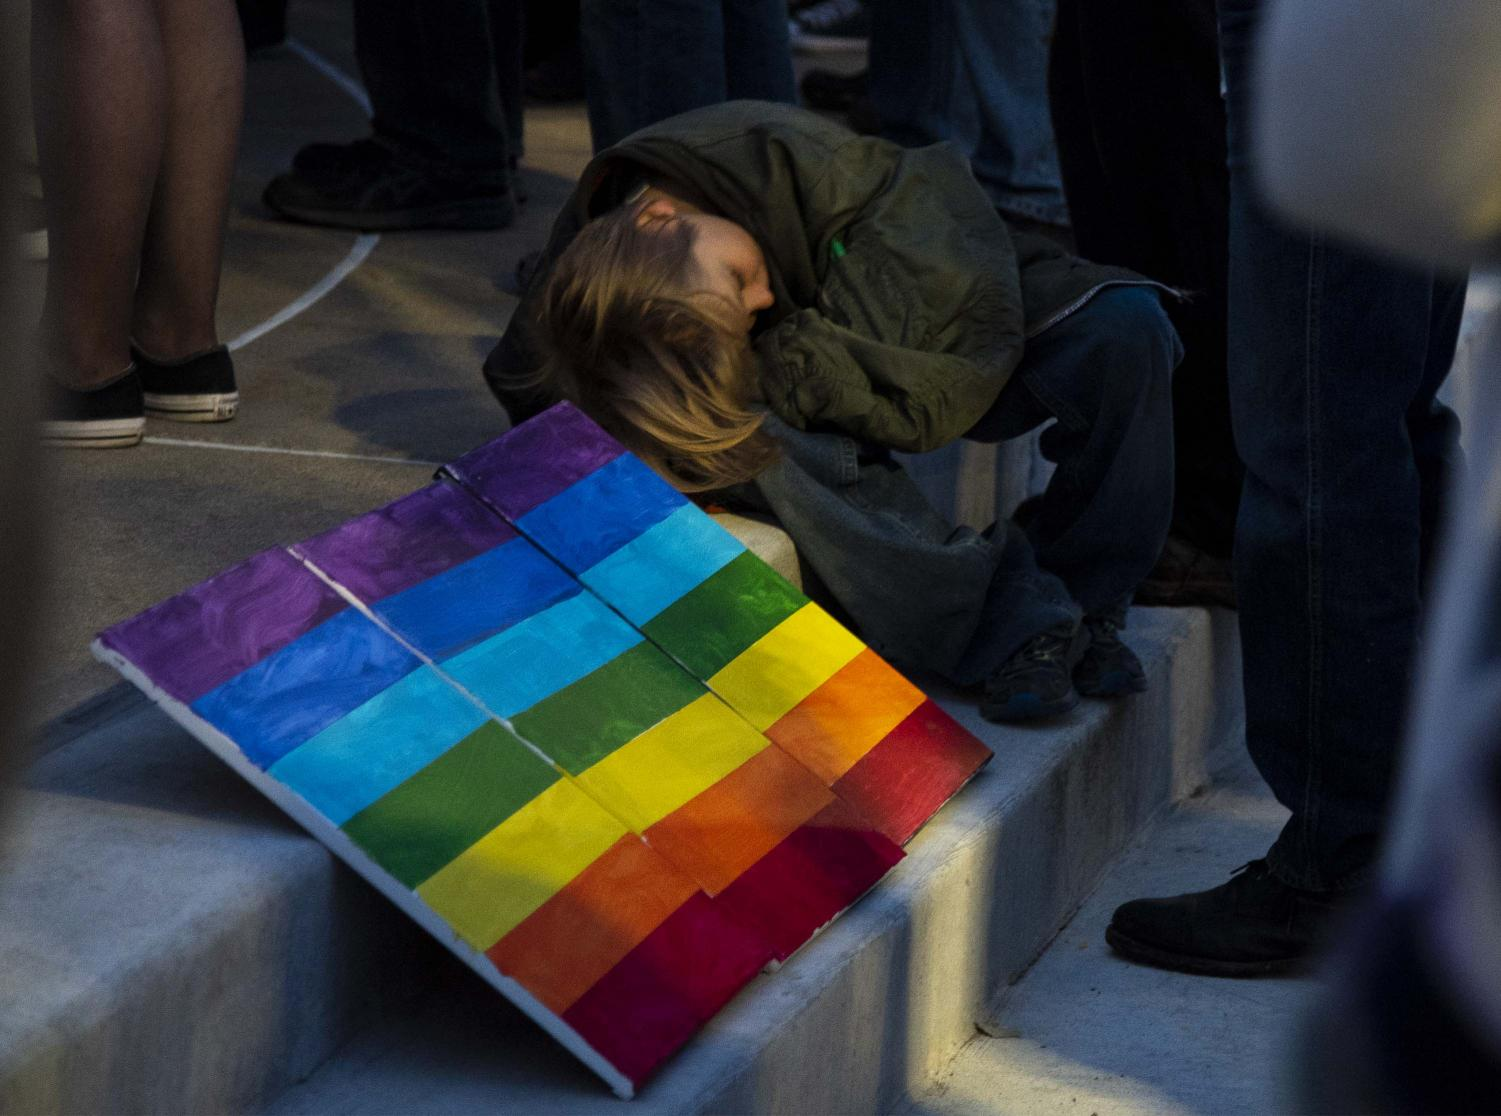 A+child+laying+next+to+a+three-panel+LGBTQ%2B+rainbow+sign+on+the+steps+of+the+Carbondale+City+Hall+during+the+City+Assembly+to+Shut+Down+Trump+event%2C+Tuesday%2C+Oct.+23%2C+2018.+%28Allie+Tiller+%7C+%40allietiller_de%29%28Allie+Tiller+%7C+%40allietiller_de%29